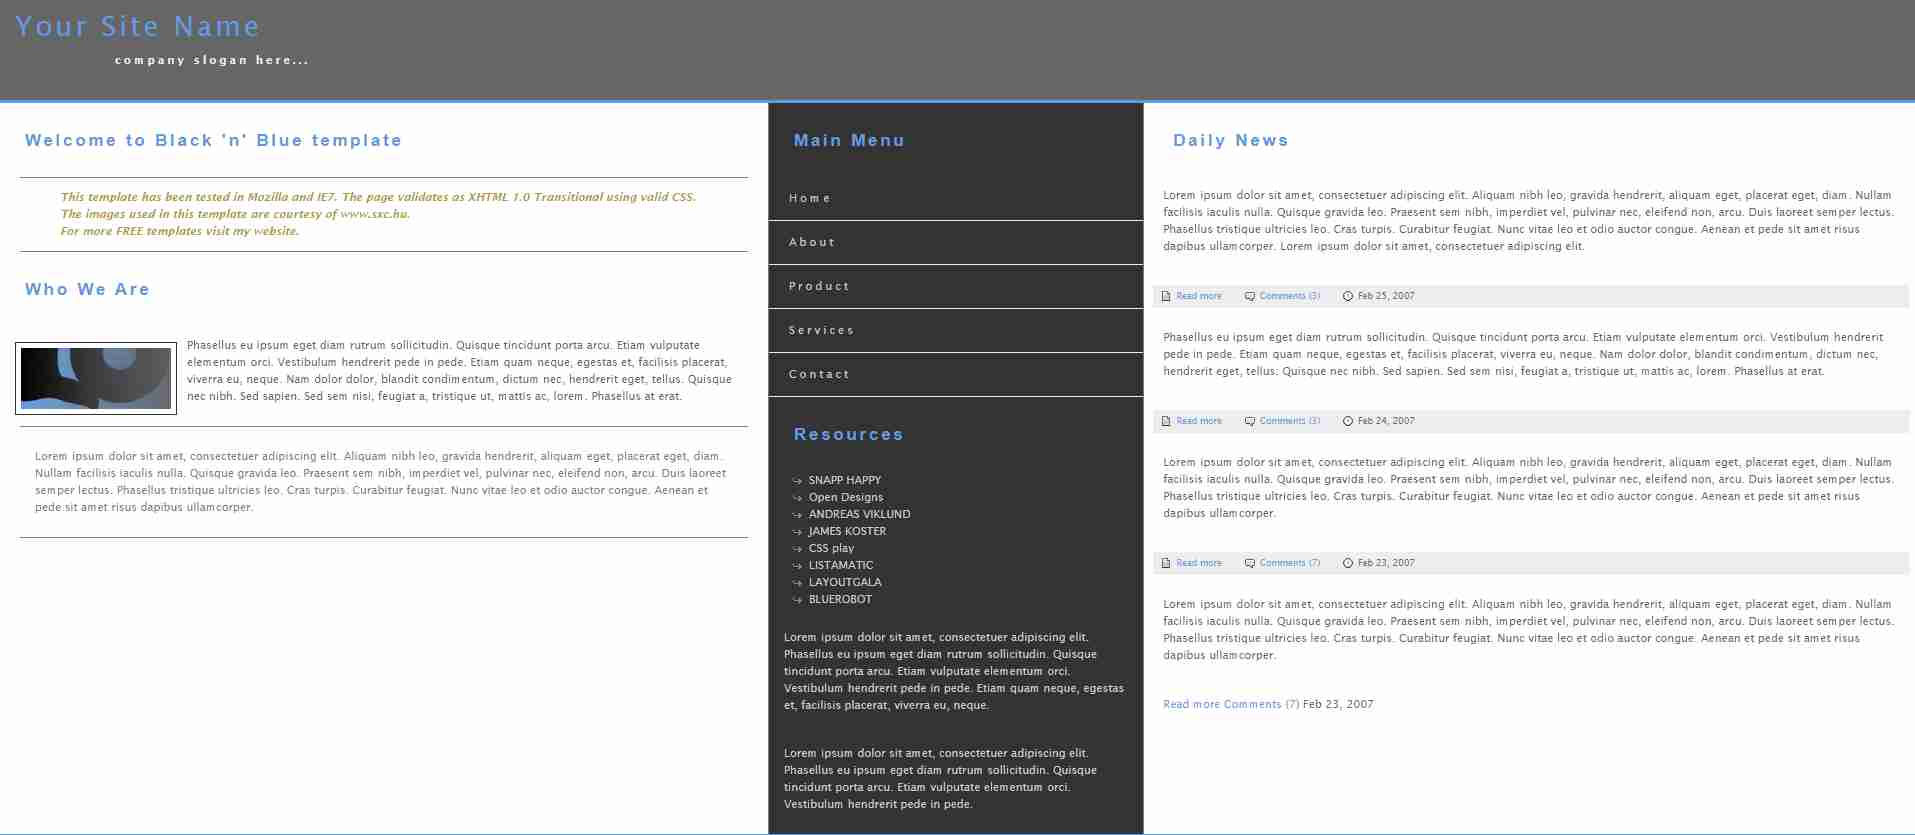 Website Design Using HTML CSS And JAVASCRIPT